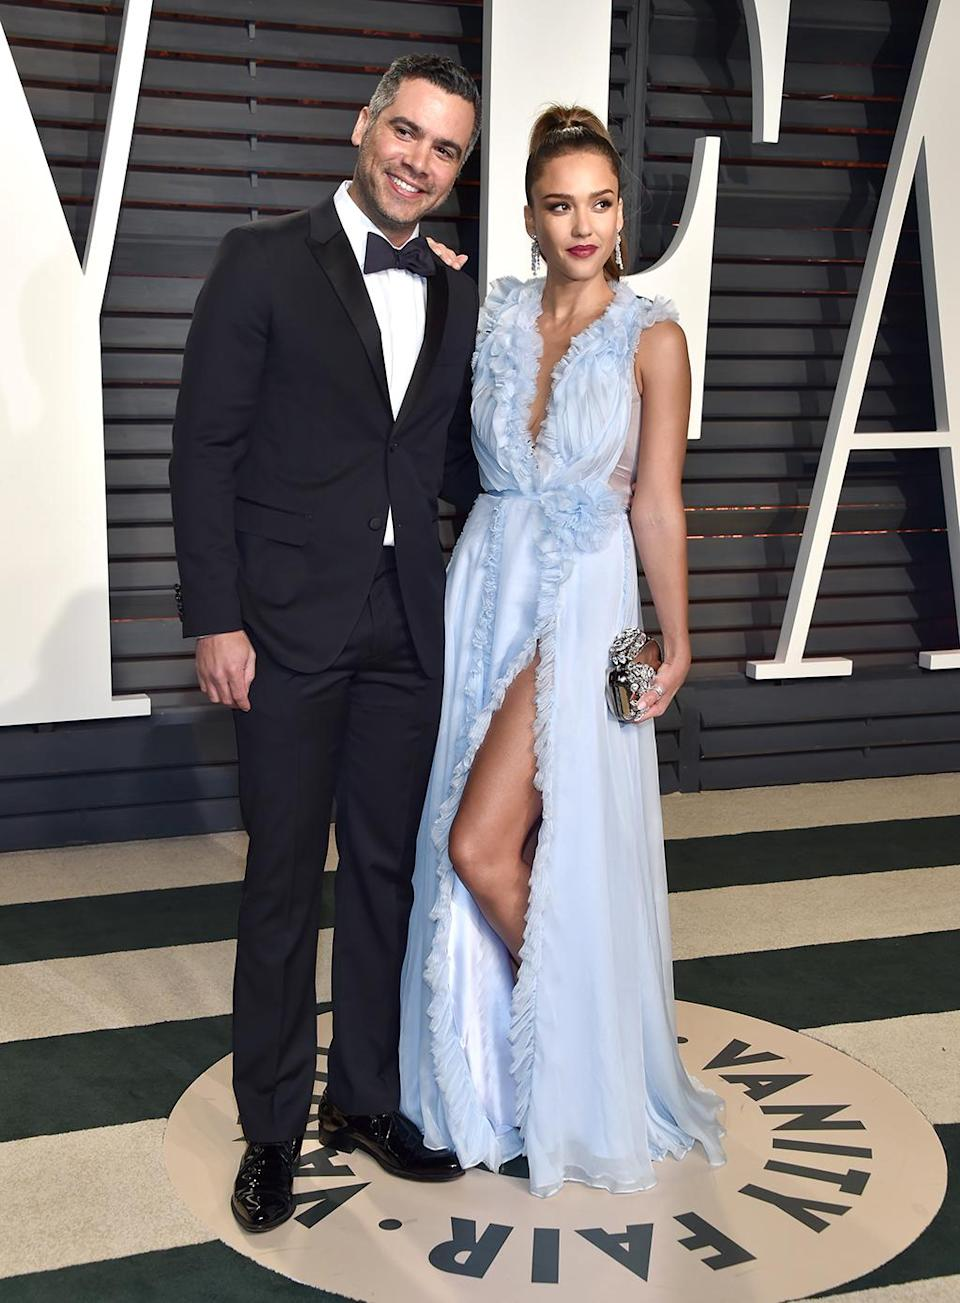 <p>Producer Cash Warren and Jessica Alba attend the 2017 Vanity Fair Oscar Party hosted by Graydon Carter at Wallis Annenberg Center for the Performing Arts on February 26, 2017 in Beverly Hills, California. (Photo by Pascal Le Segretain/Getty Images) </p>